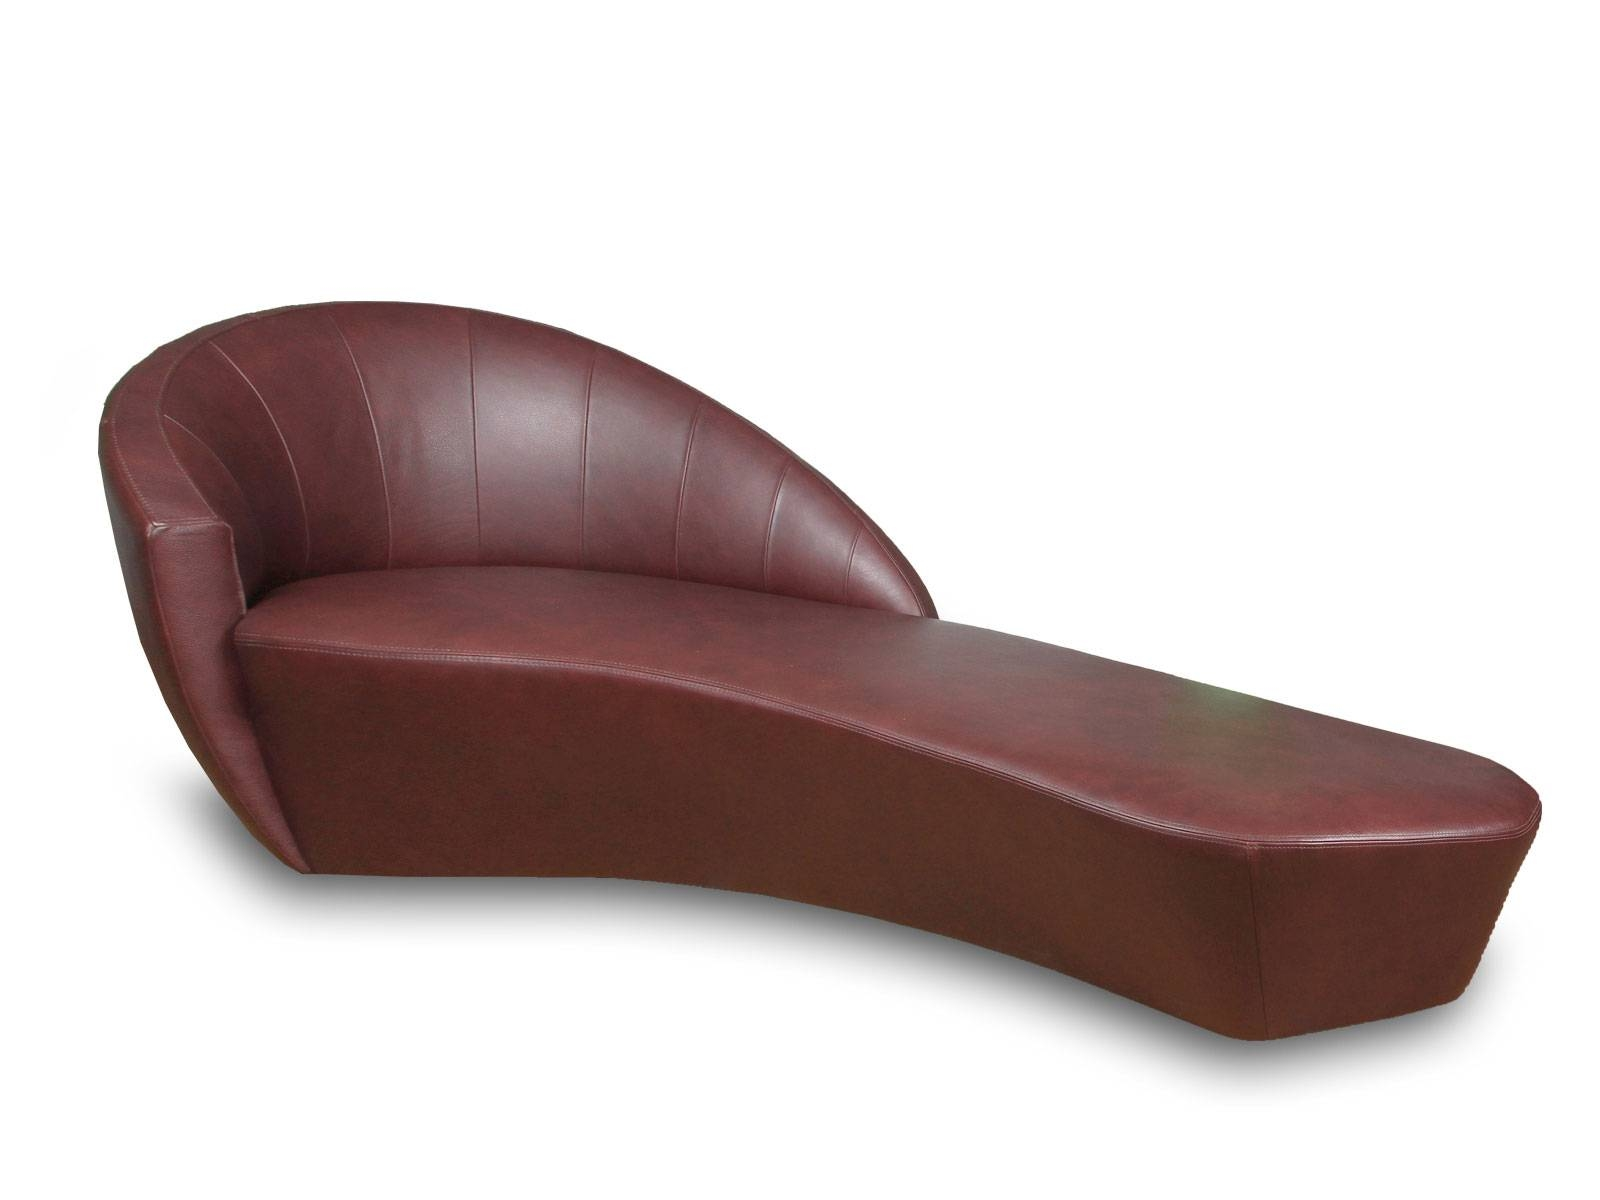 Leather chaise lounge sofa baxton studio pease faux for Chaise longue lockheed lounge